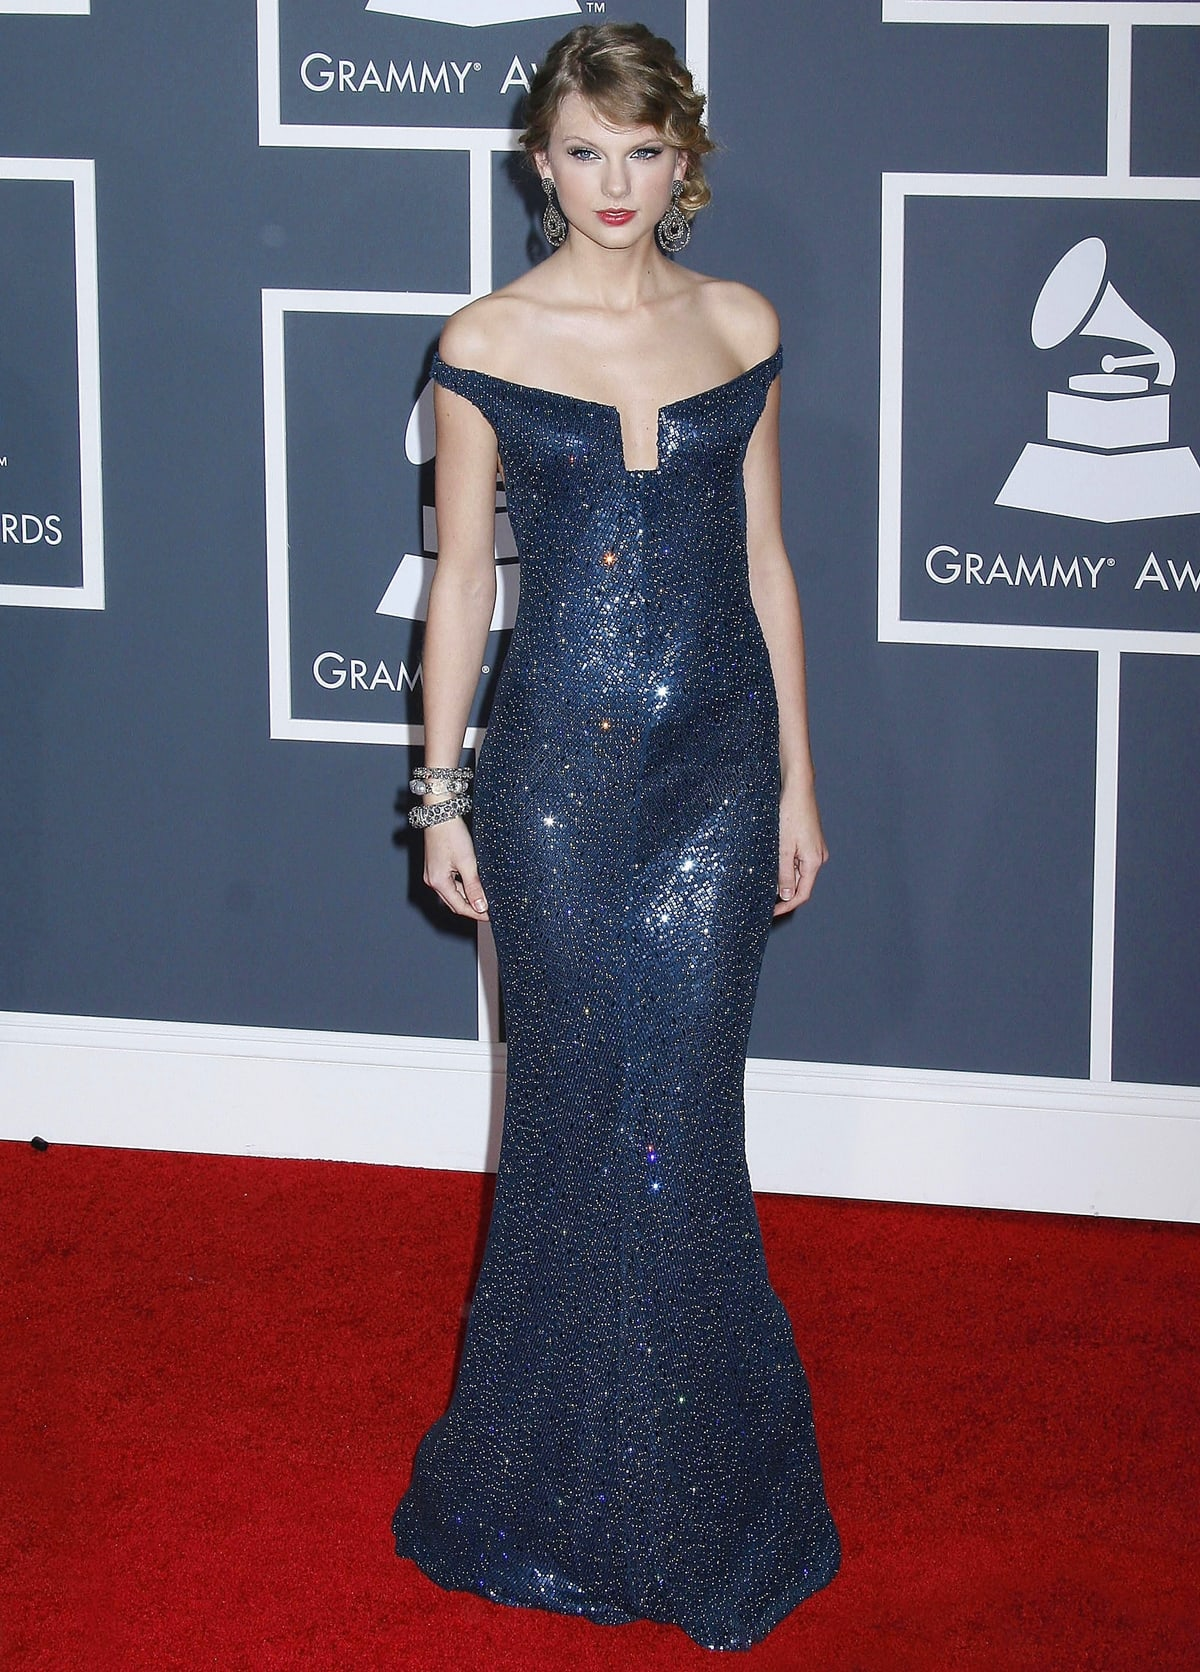 Taylor Swift's Fearless won Album of the Year at the 52nd Annual Grammy Awards